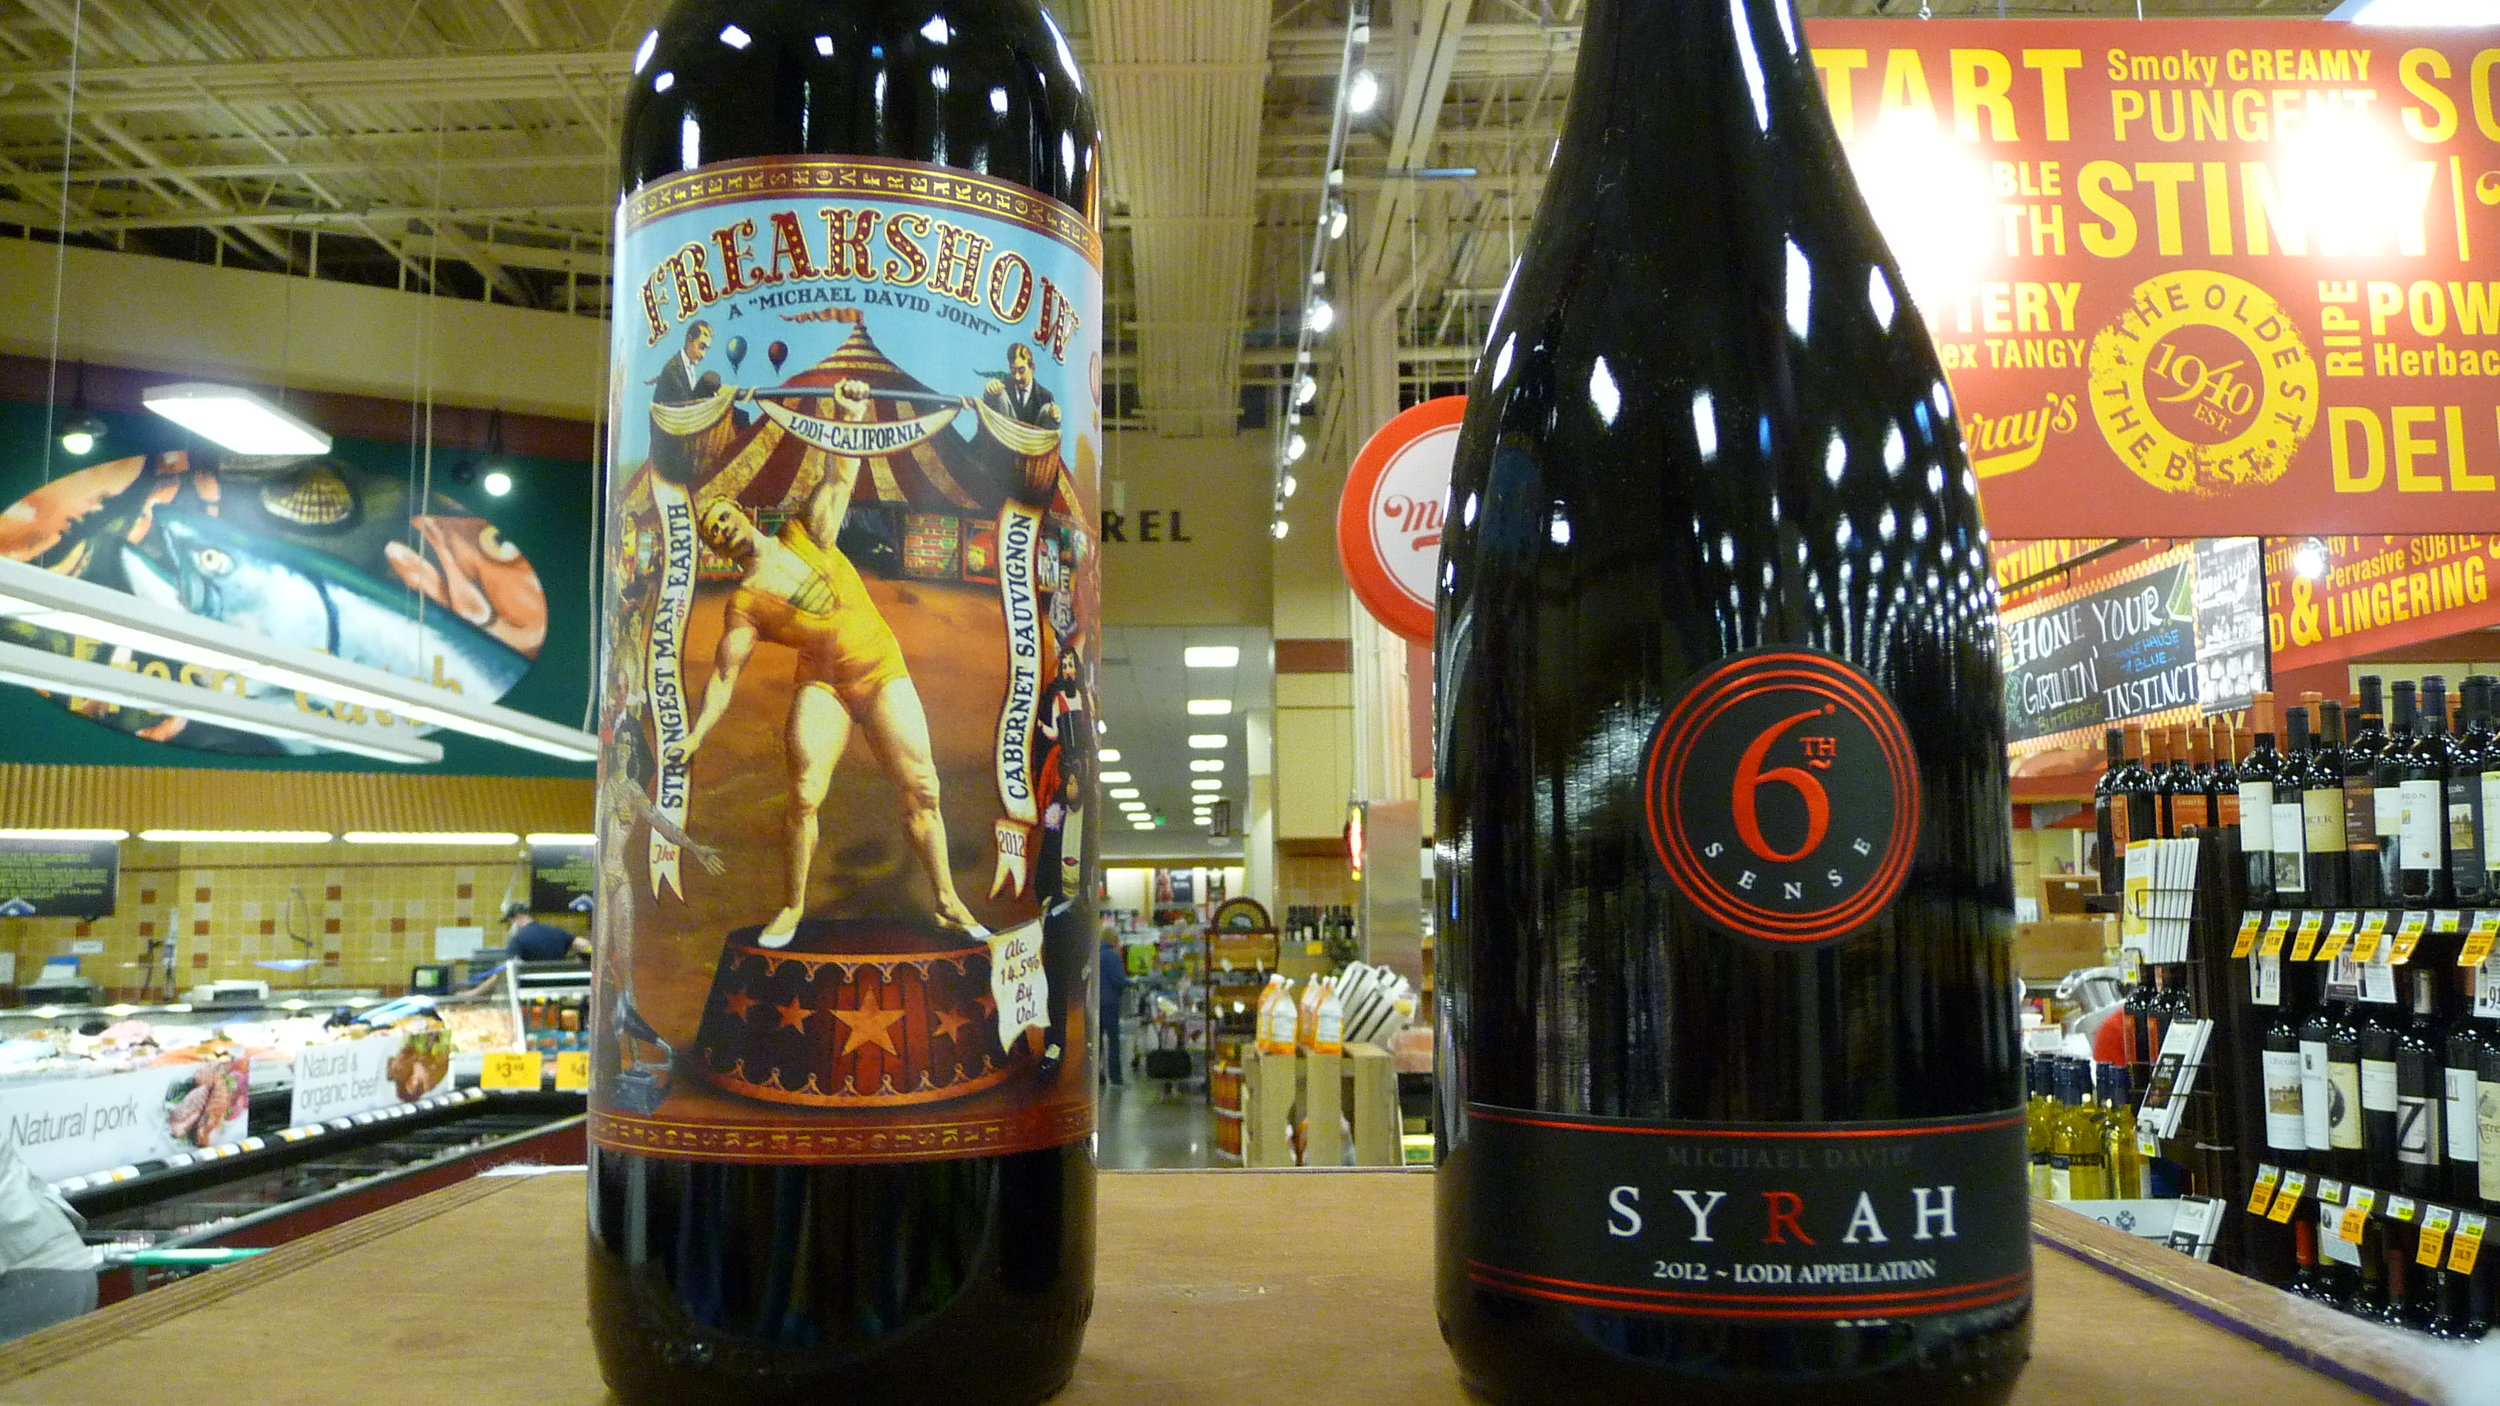 A couple of Michael David Winery's Halloween-worthy wines -Freakshow and 6th Sense Syrah